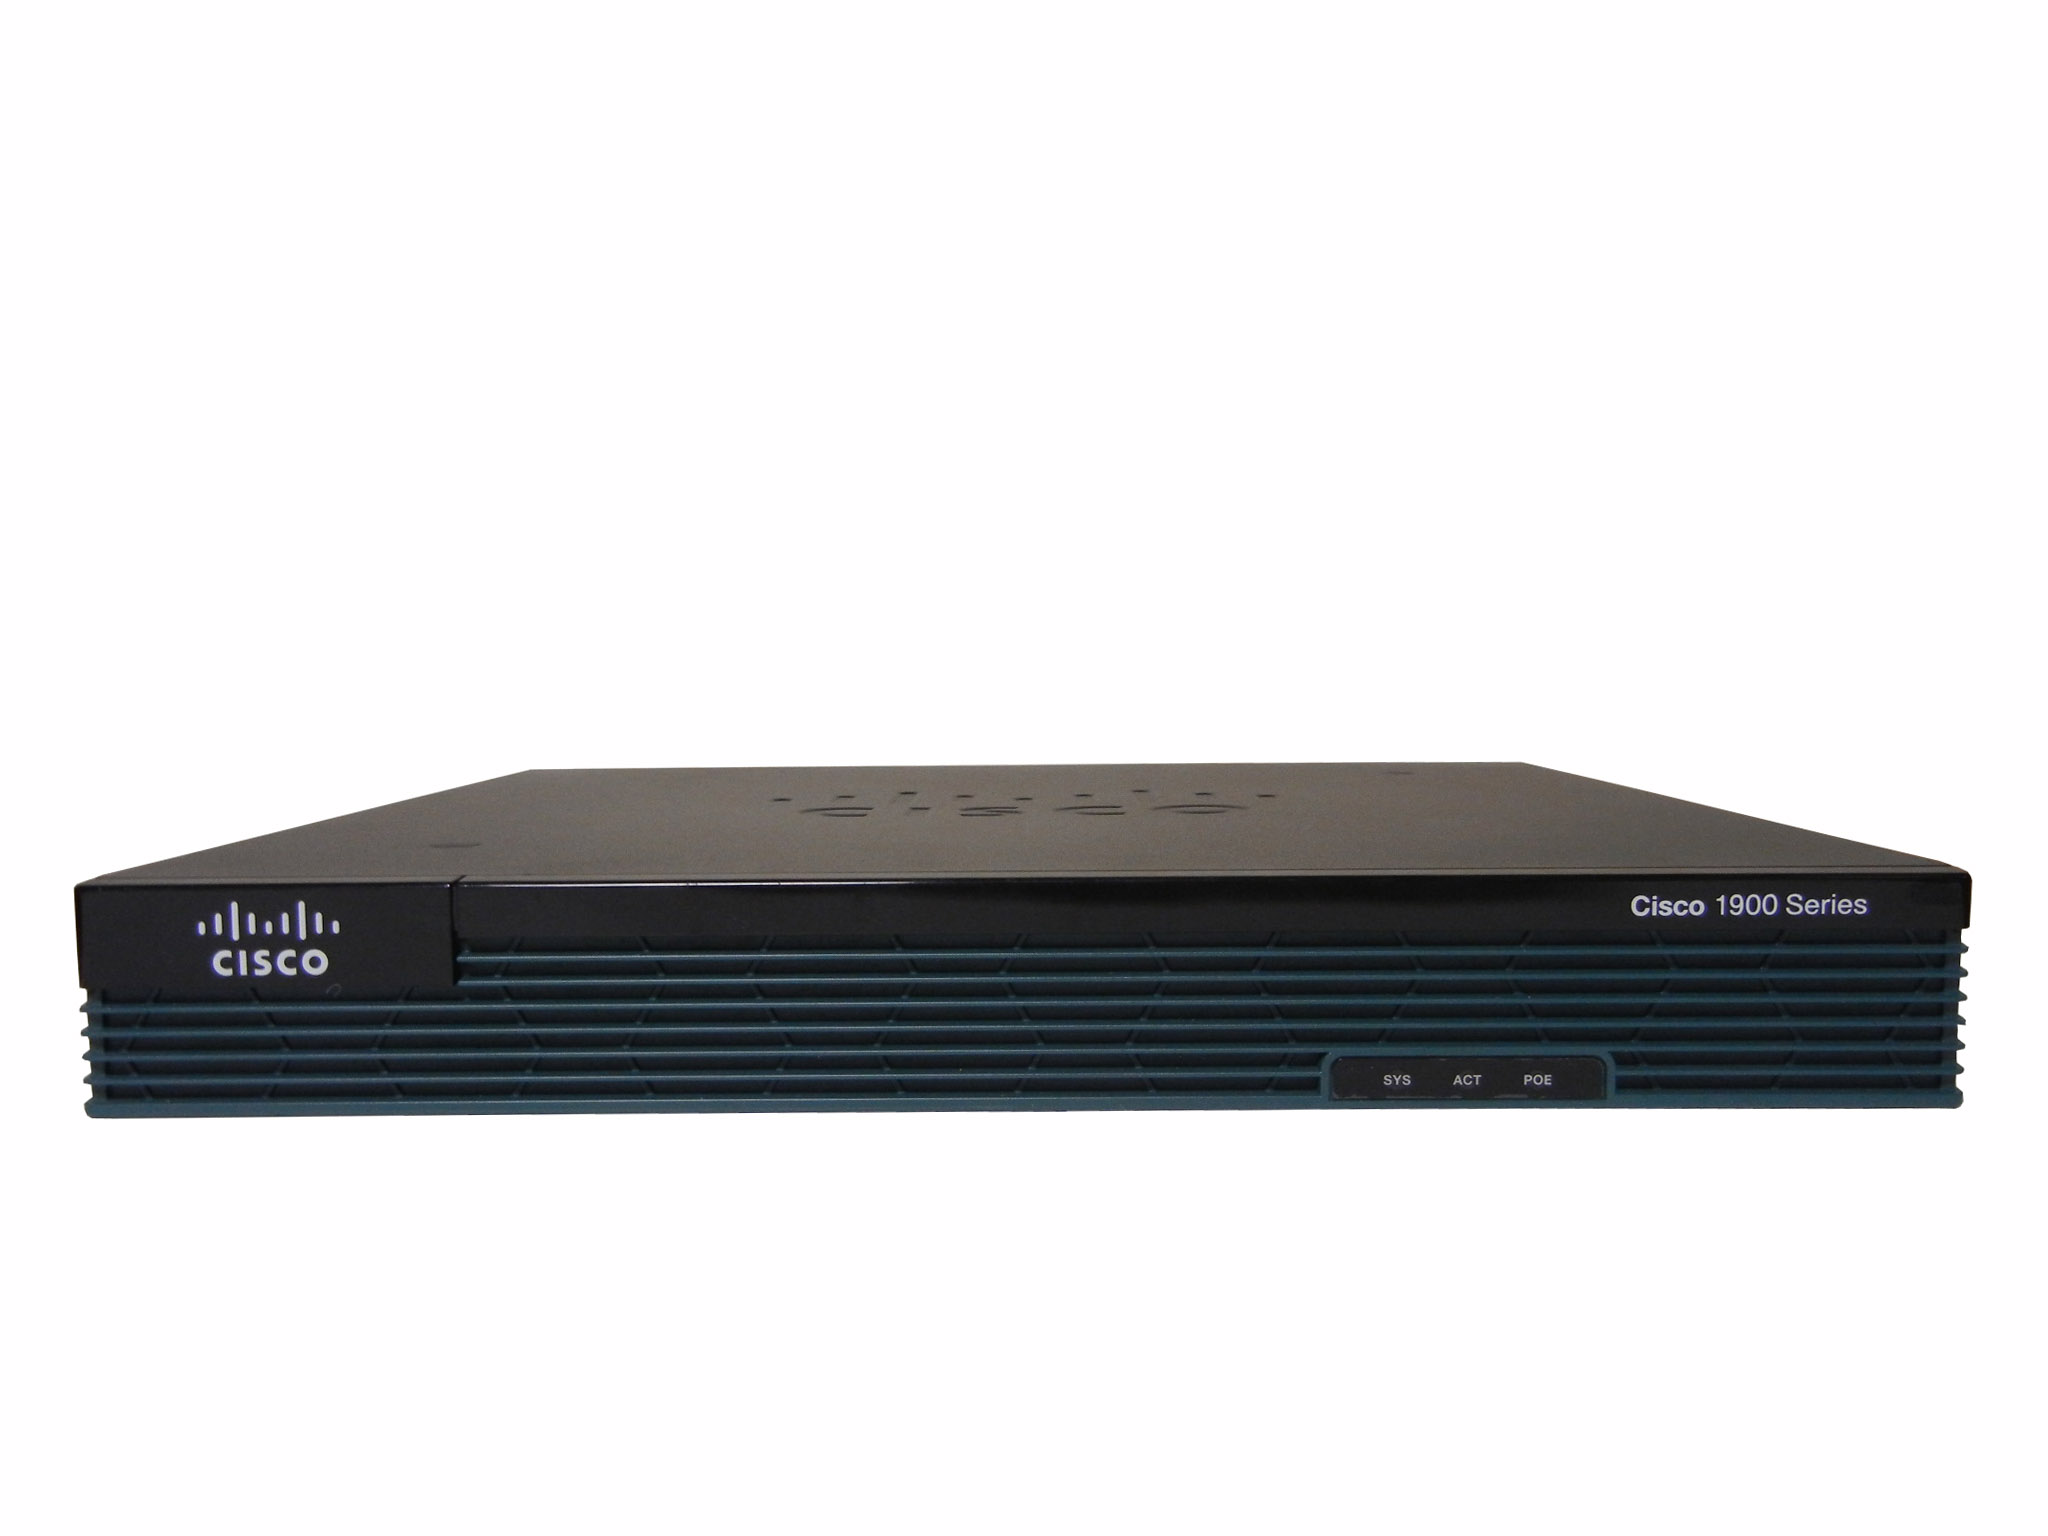 【中古】 Cisco1921/K9 (ipbasek9/securityk9/datak9) サービス統合型ルータ